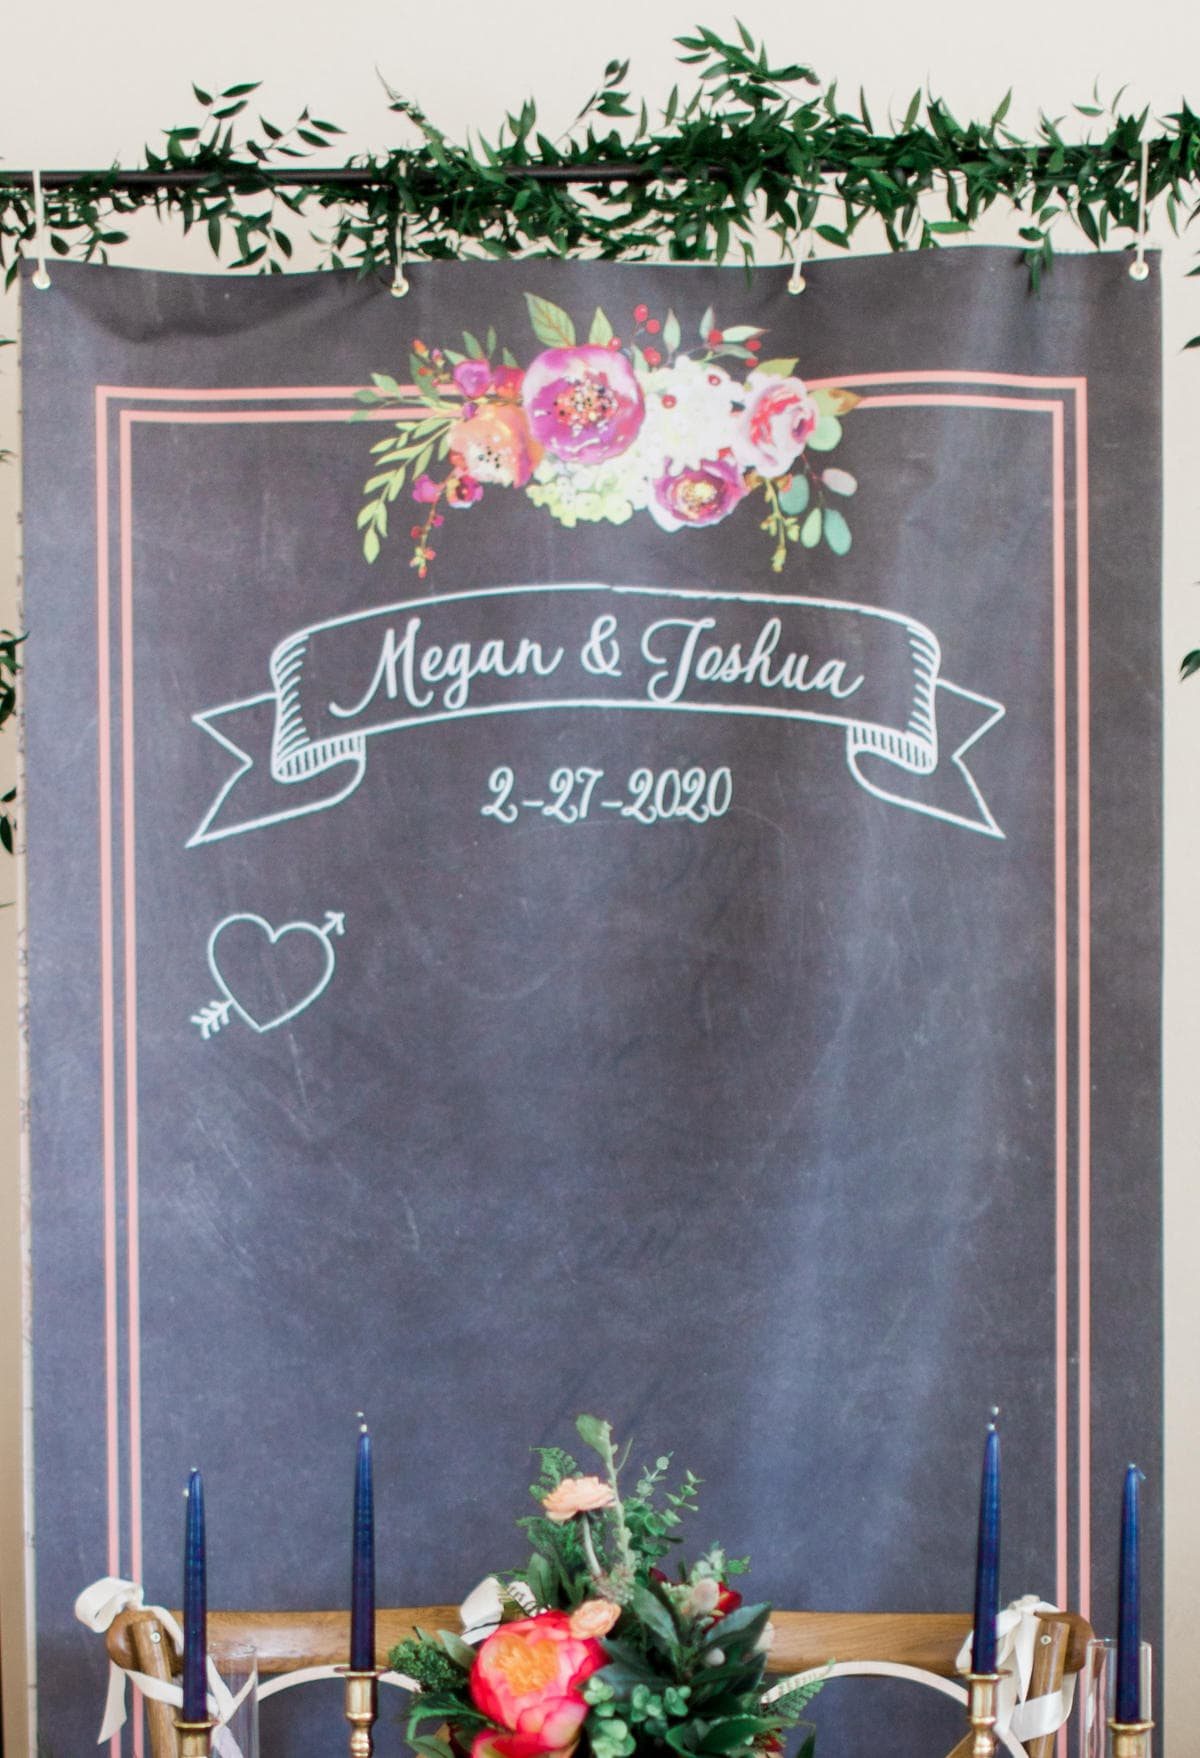 Wedding Backdrop for Booth or Ceremony Decor Chalkboard